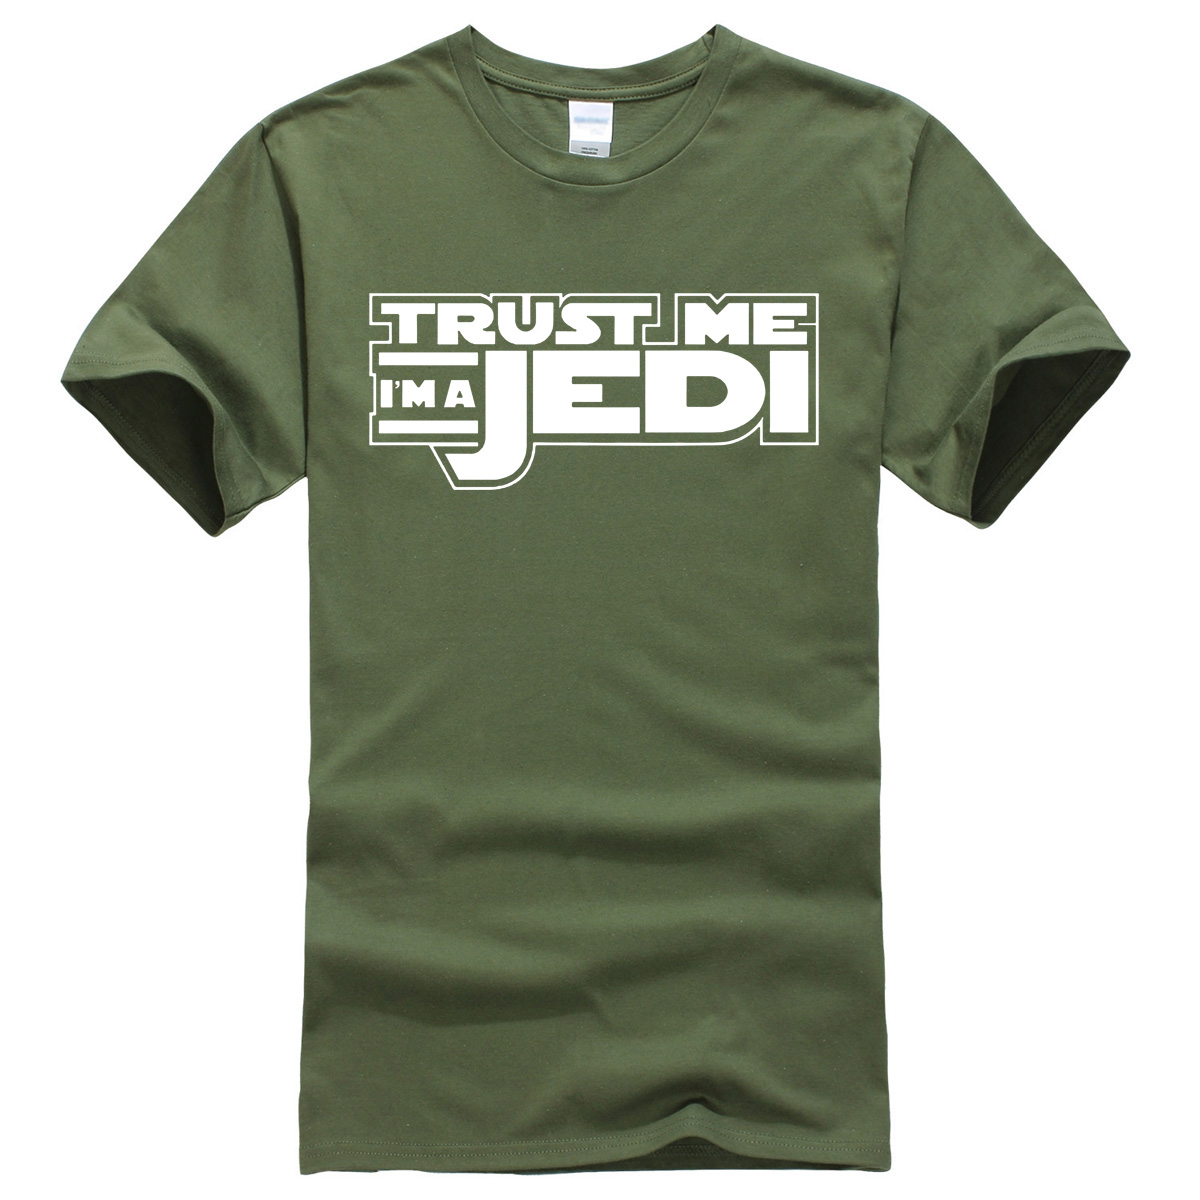 TRUST ME I AM JEDI print 2017 summer man's T-shirt fashion casual short sleeve T-shirt men harajuku kpop jersey homme crossfit